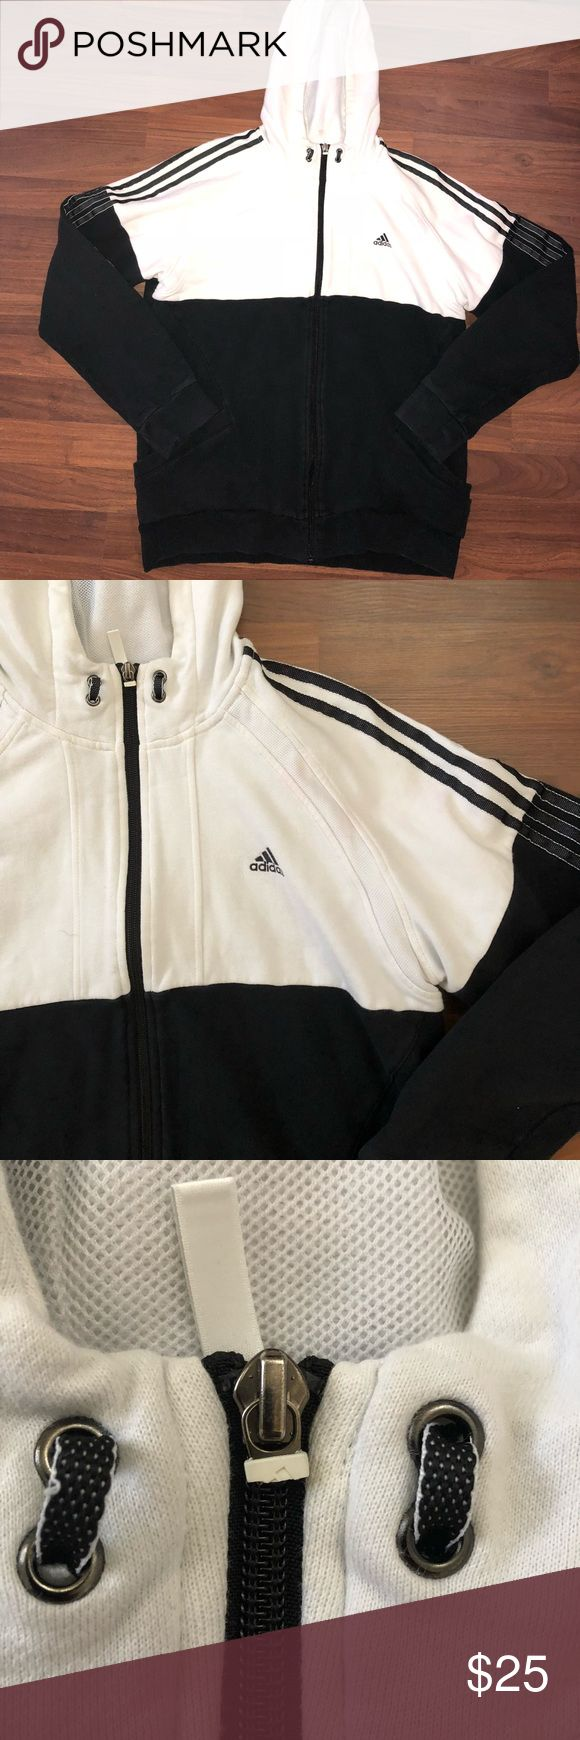 Men's Adidas hoodie size Large Men's Adidas hoodie size Large. This is a cotton hoodie, Black and white with black transitional stripes down each sleeve. Zipper zips up, buy the pull tab is missing as shown and the black is very slightly faded but still in great condition adidas Jackets & Coats Performance Jackets